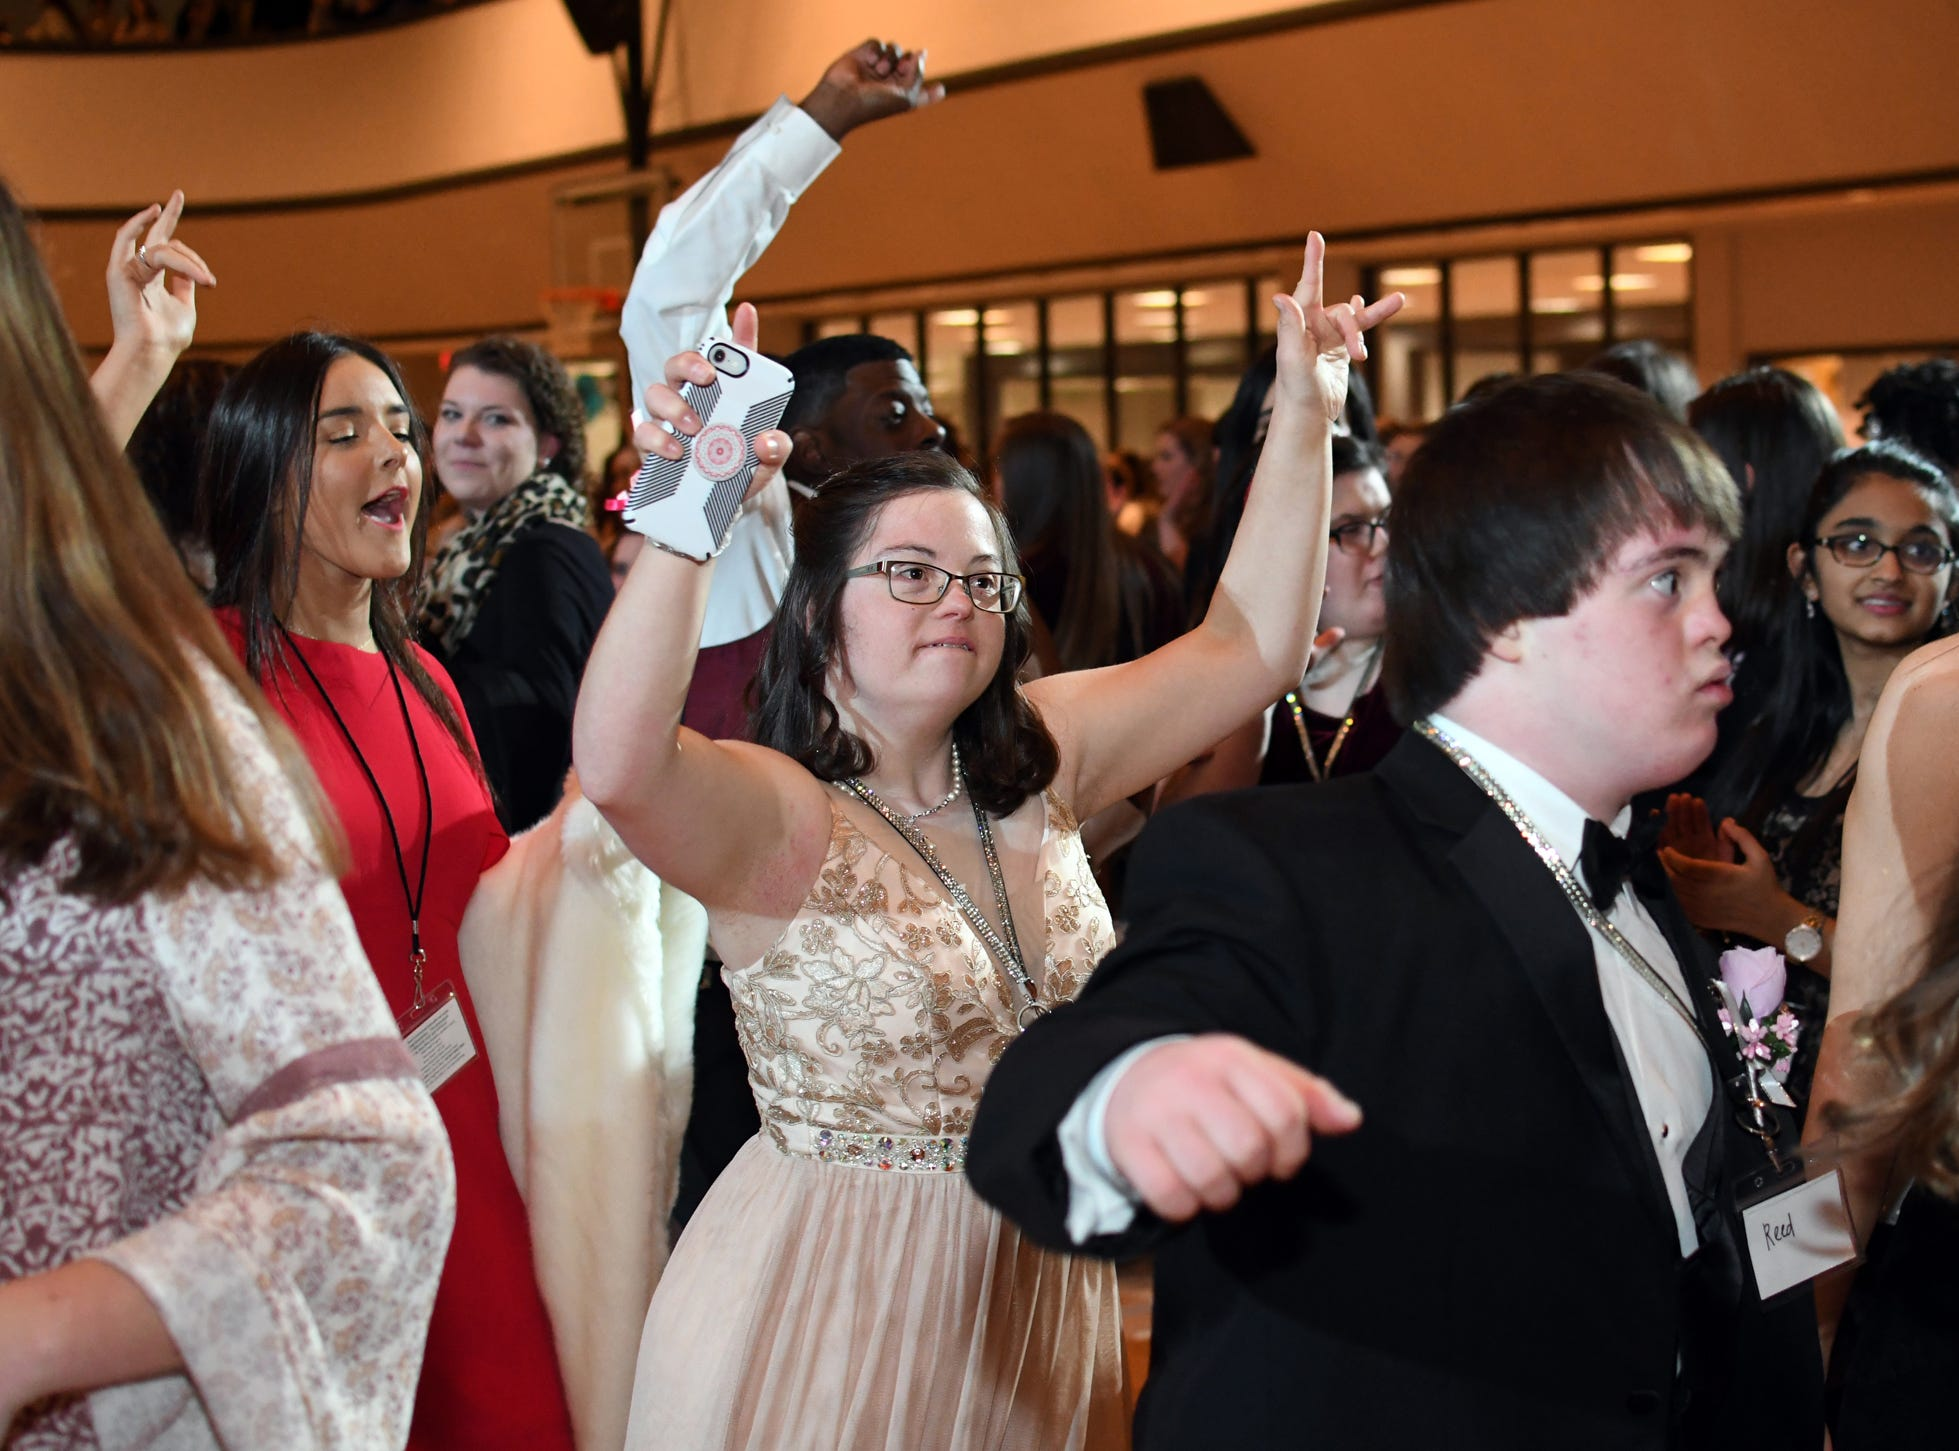 Prom guests dance during the Night to Shine Prom at Temple Baptist Church on Friday, February 8, 2019. Churches around the world hosted the prom by the Tim Tebow Foundation for people with special needs.